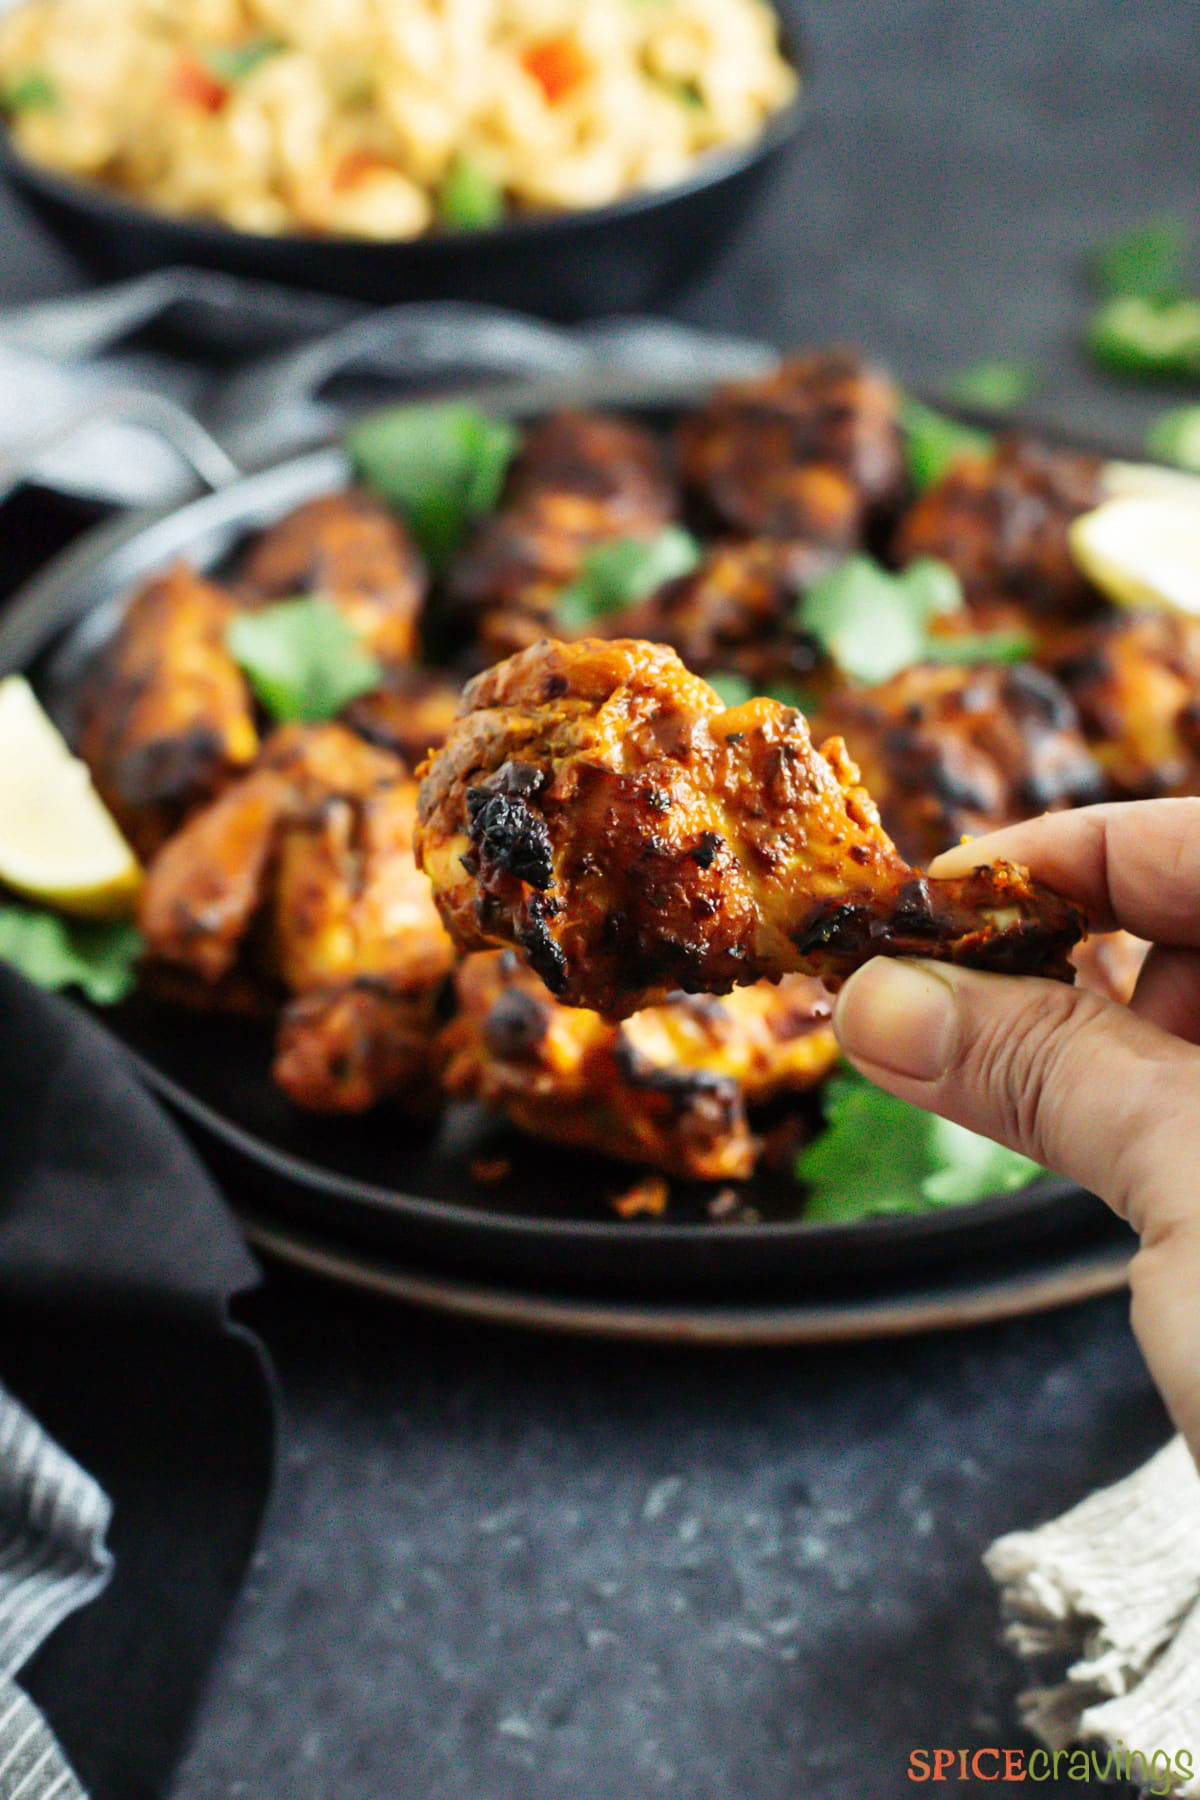 A hand lifting a tandoori chicken wing from a tray